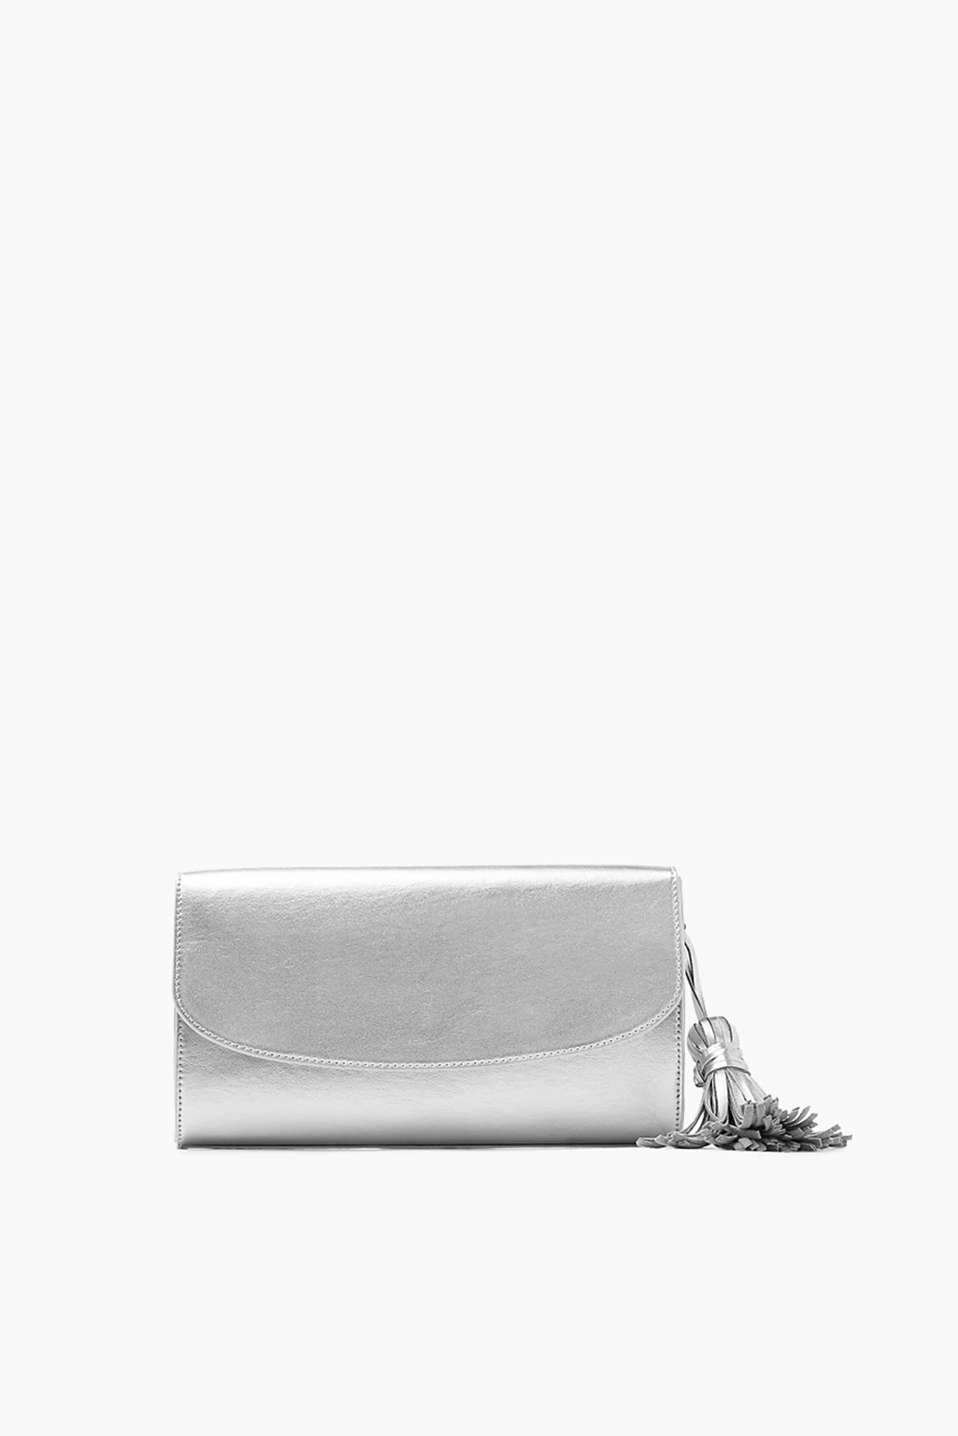 Clutch bag in shimmery smooth faux leather with a distinctive tassel detail